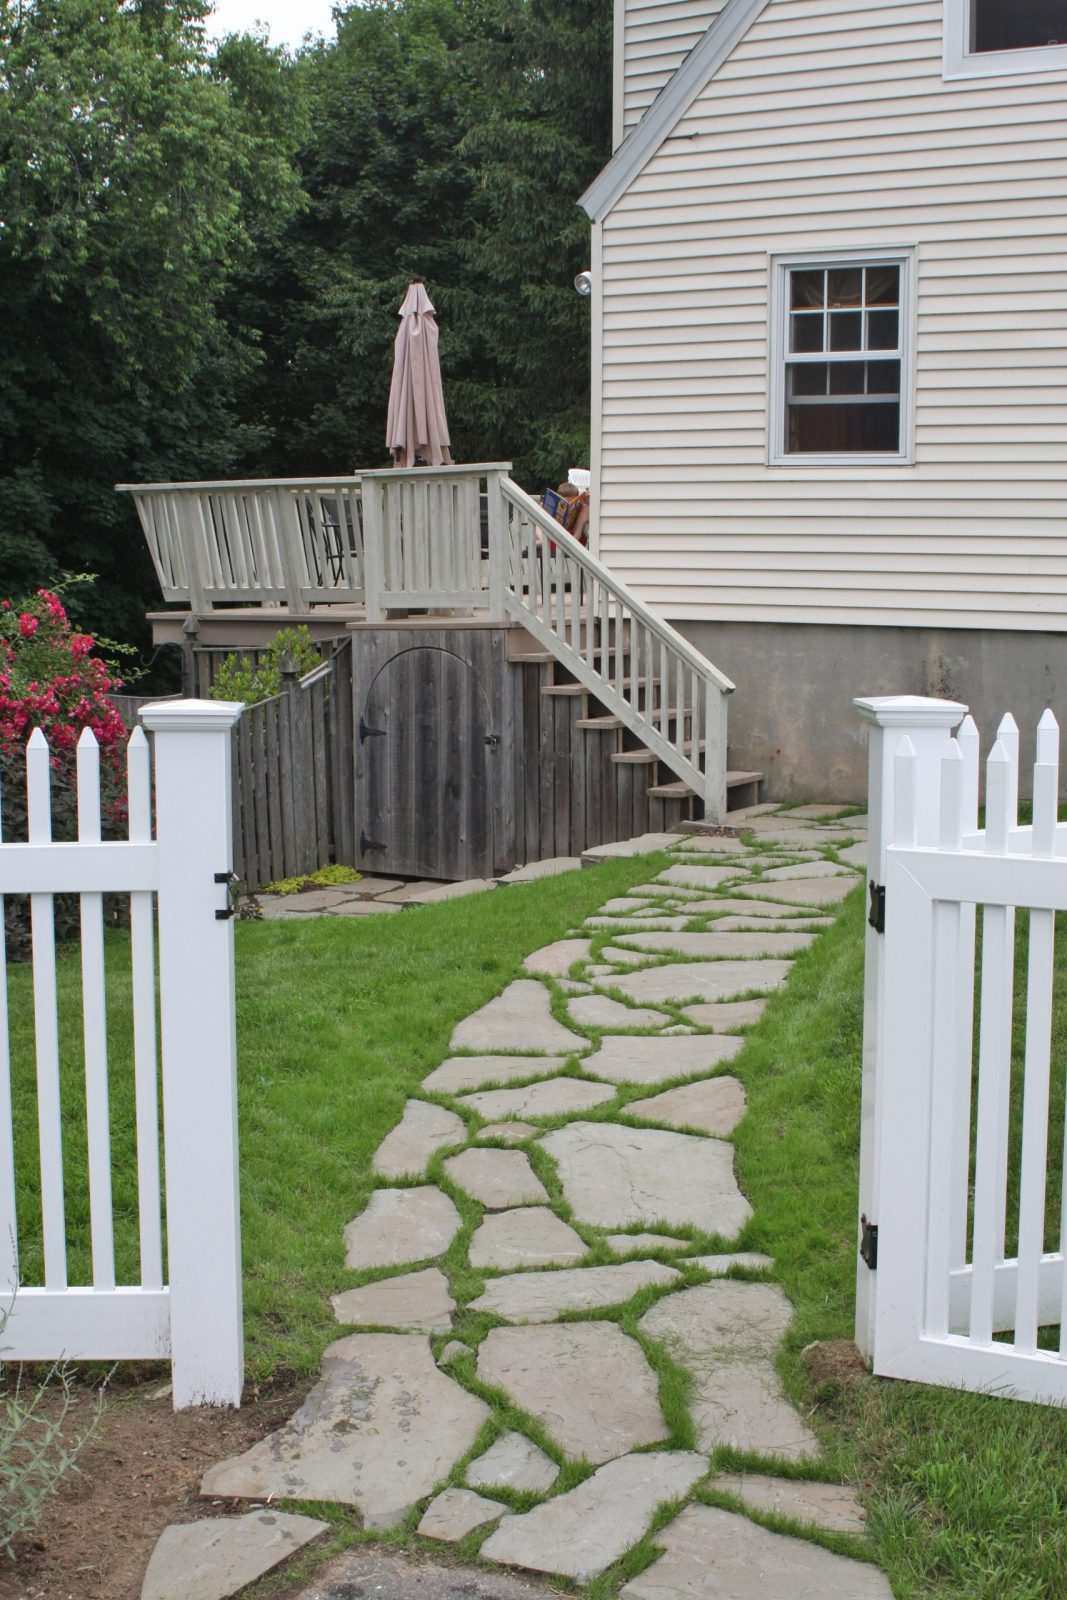 How to Lay a Path of Natural Stepping Stones